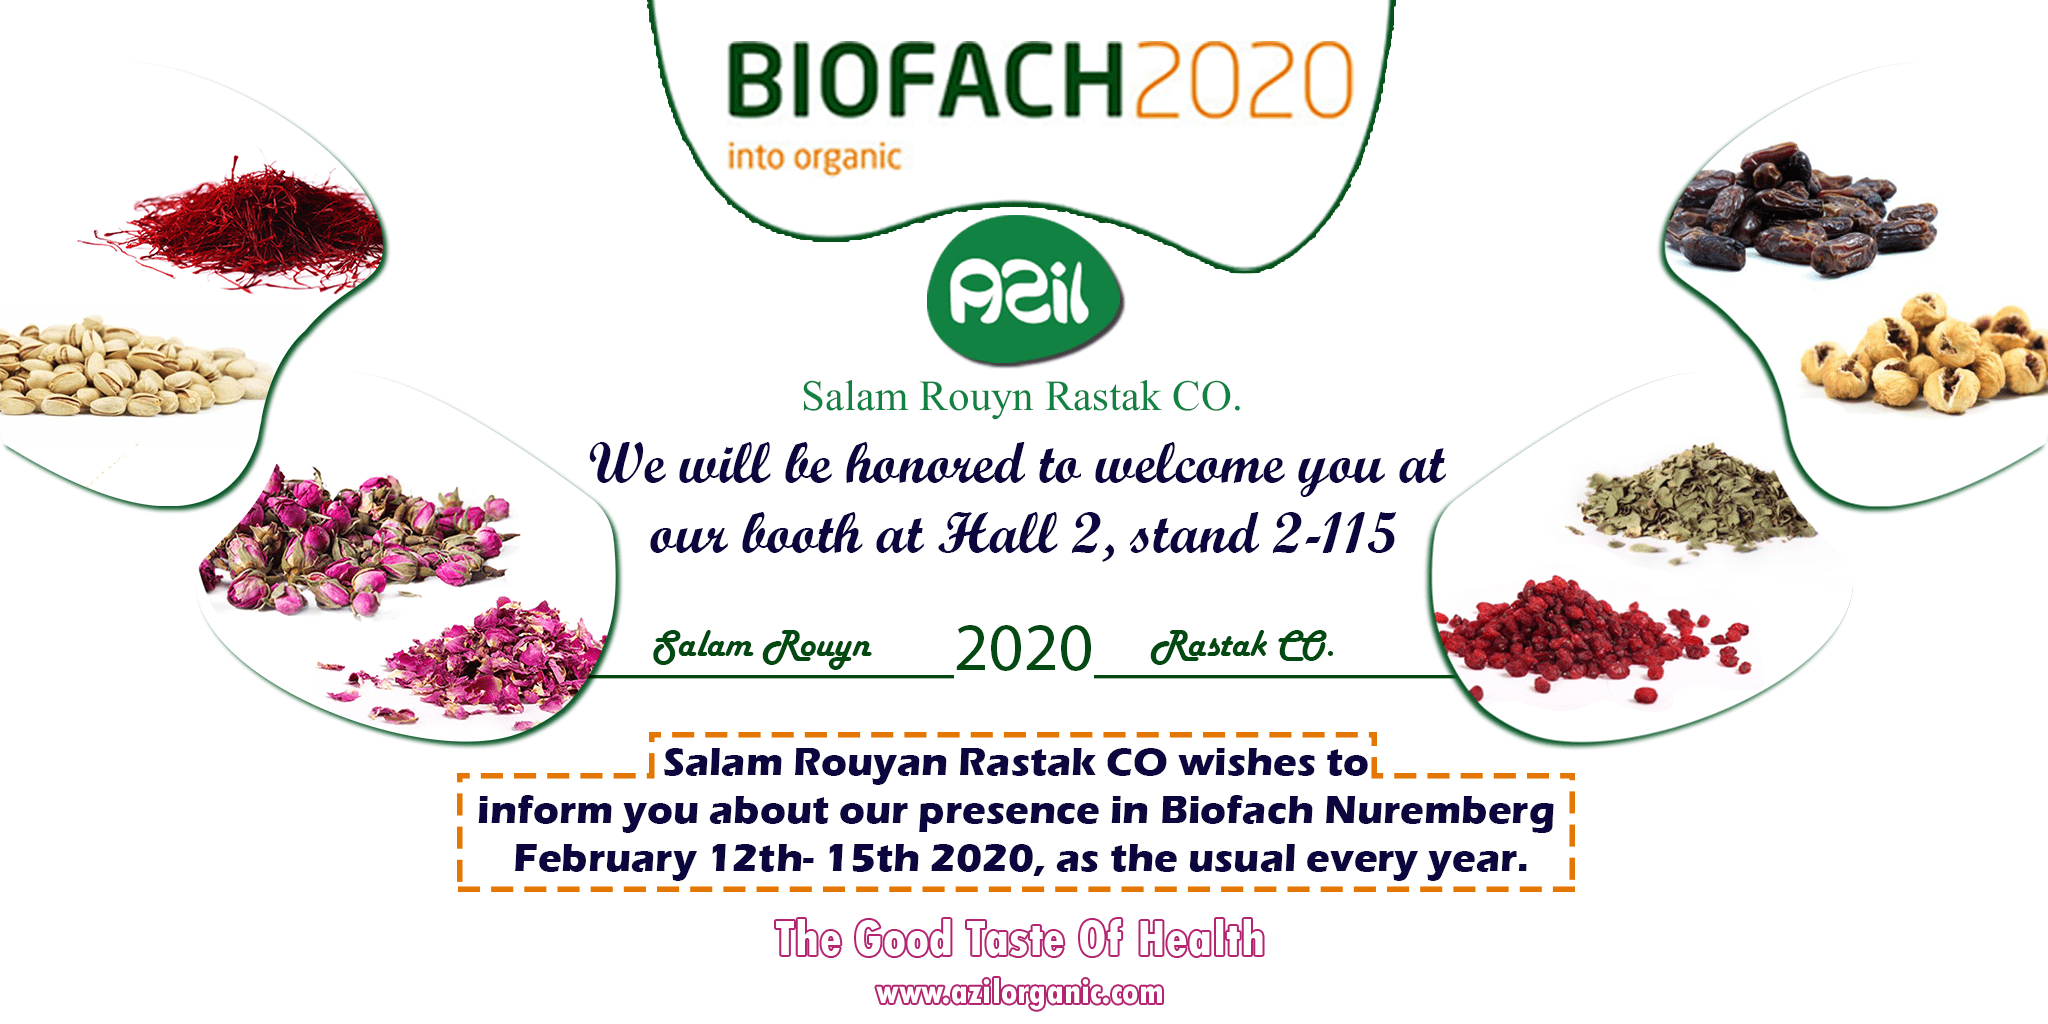 55252 - Salam Rouyan Rastak CO. presence in Biofach 2020 -Germany